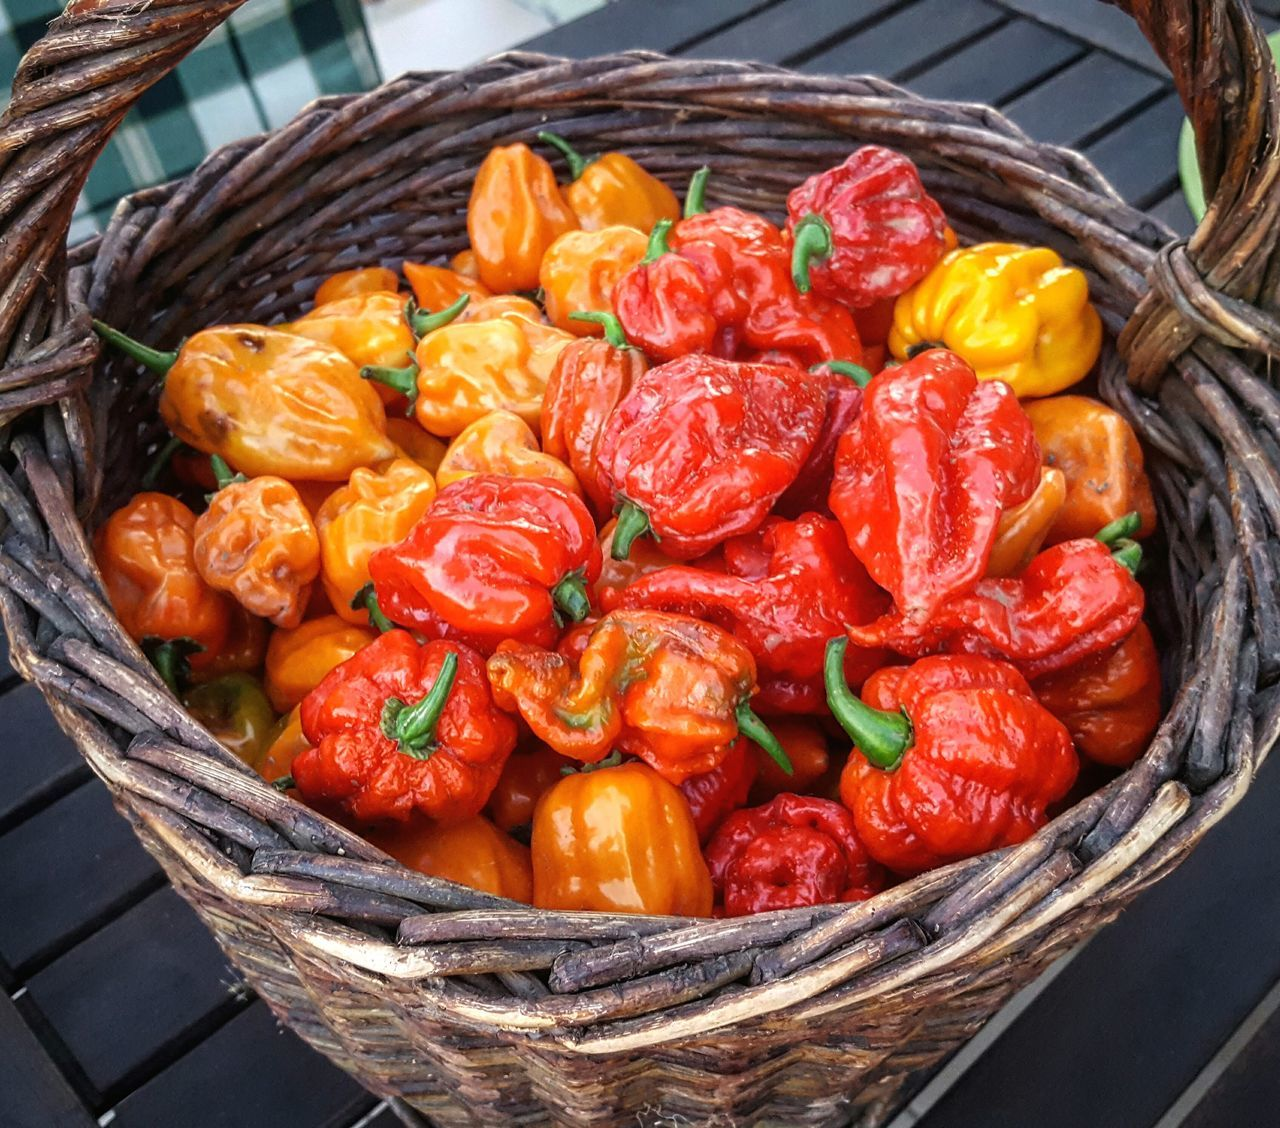 It is gathering season! Food Food And Drink Red Freshness Vegetable Healthy Eating Market Yellow No People Close-up Asian Food Plant Chilli Chillipepper Pepper Peppers Trinidad Scorpion Trinidad Scorpion Moruga Fruit Freshness Ready-to-eat Red Habanero Habaneropepper Habanero Pepper